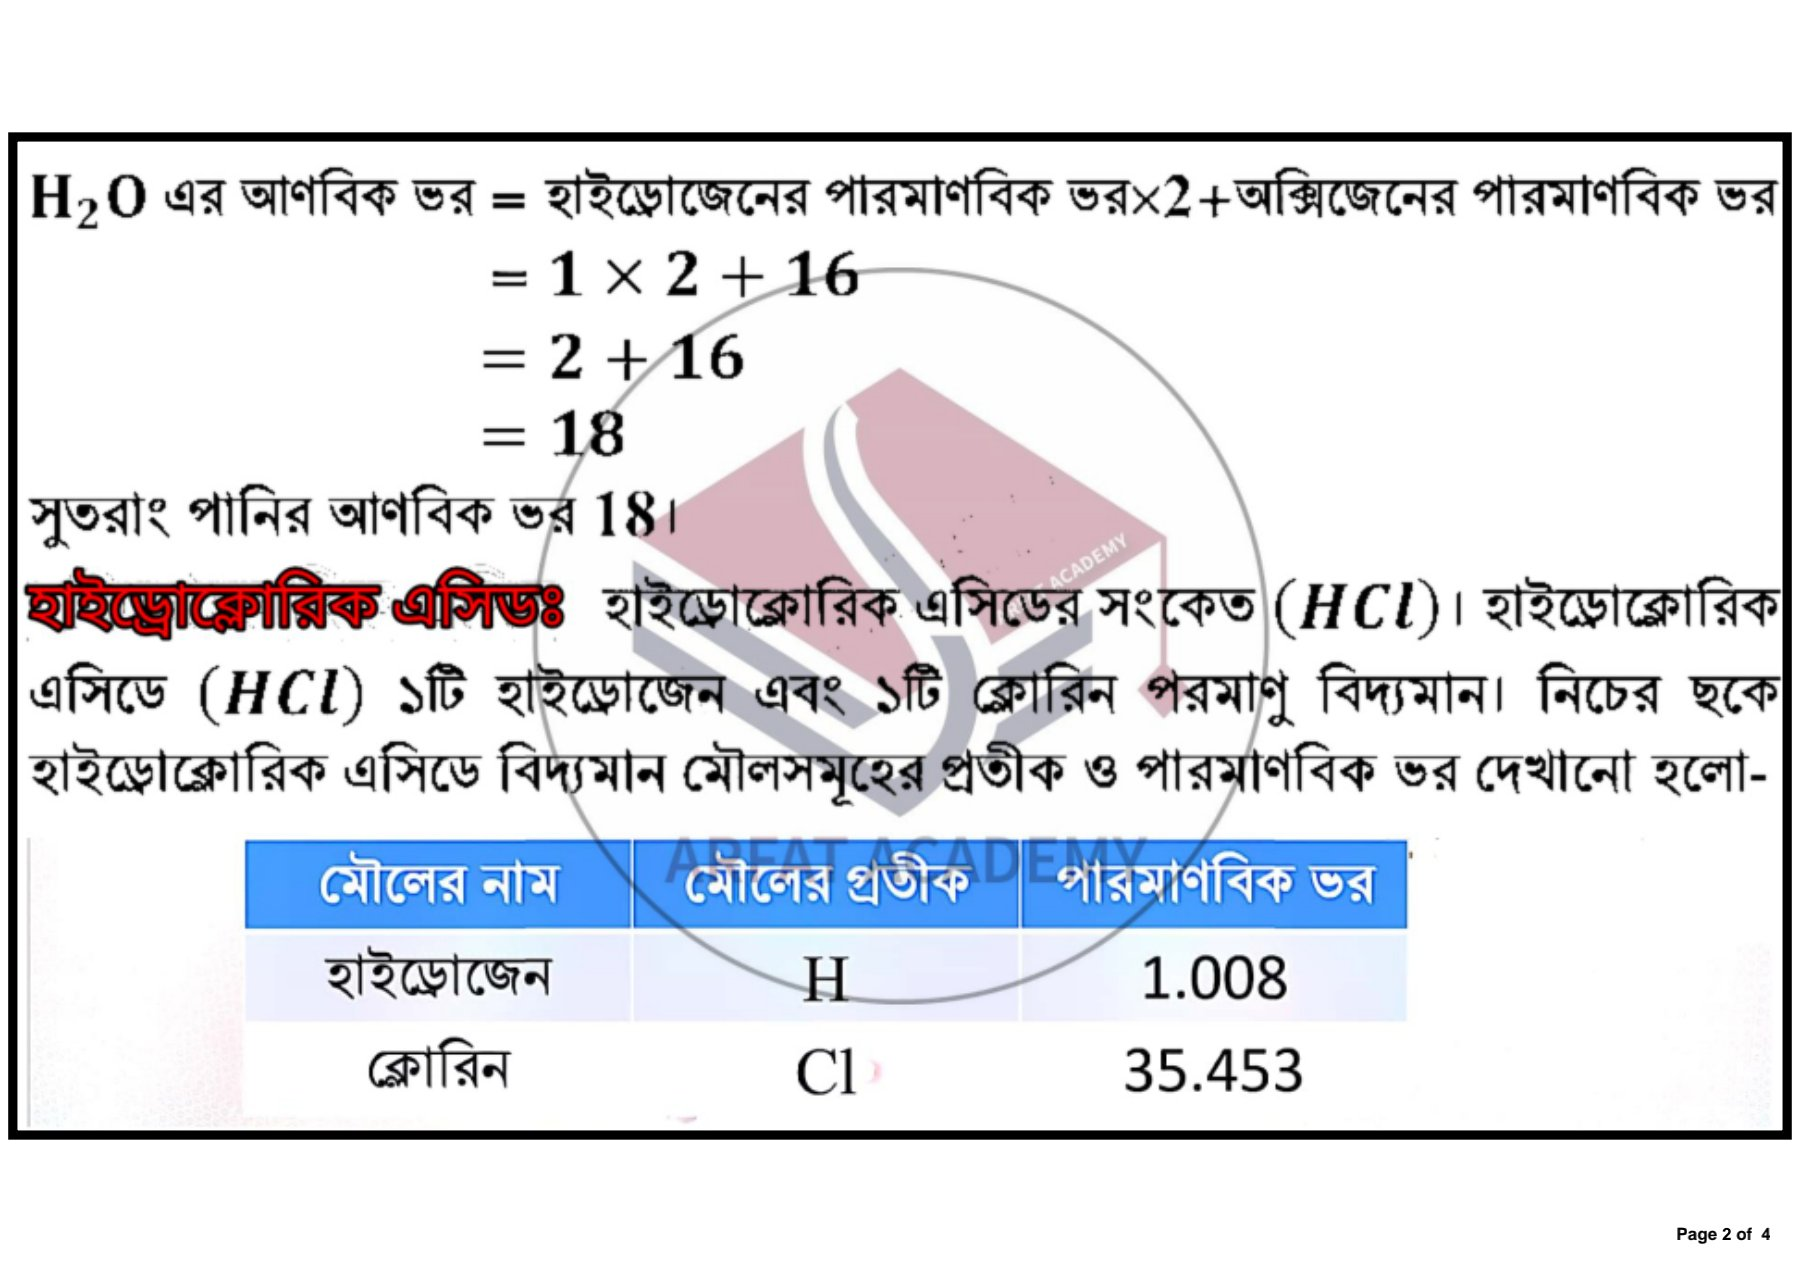 12th Week Class 9 Assignment Answer 2021